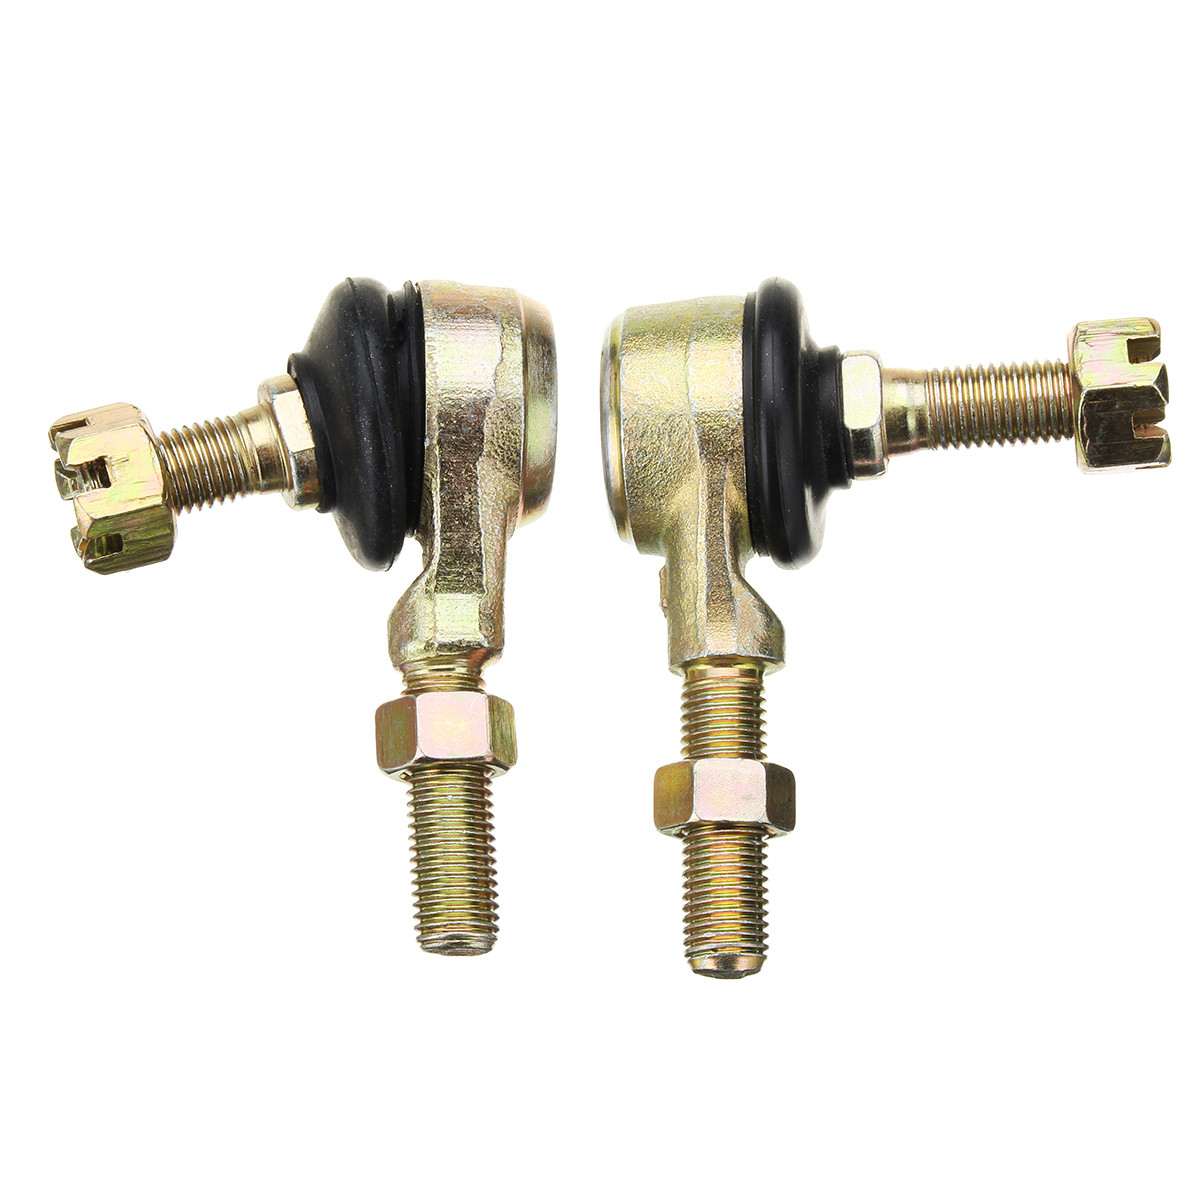 Water Resisting Ball Joints Metal M10 Tie Rod Ball Joint For 50cc upto 250cc ATV Quad 4-Wheeler 1